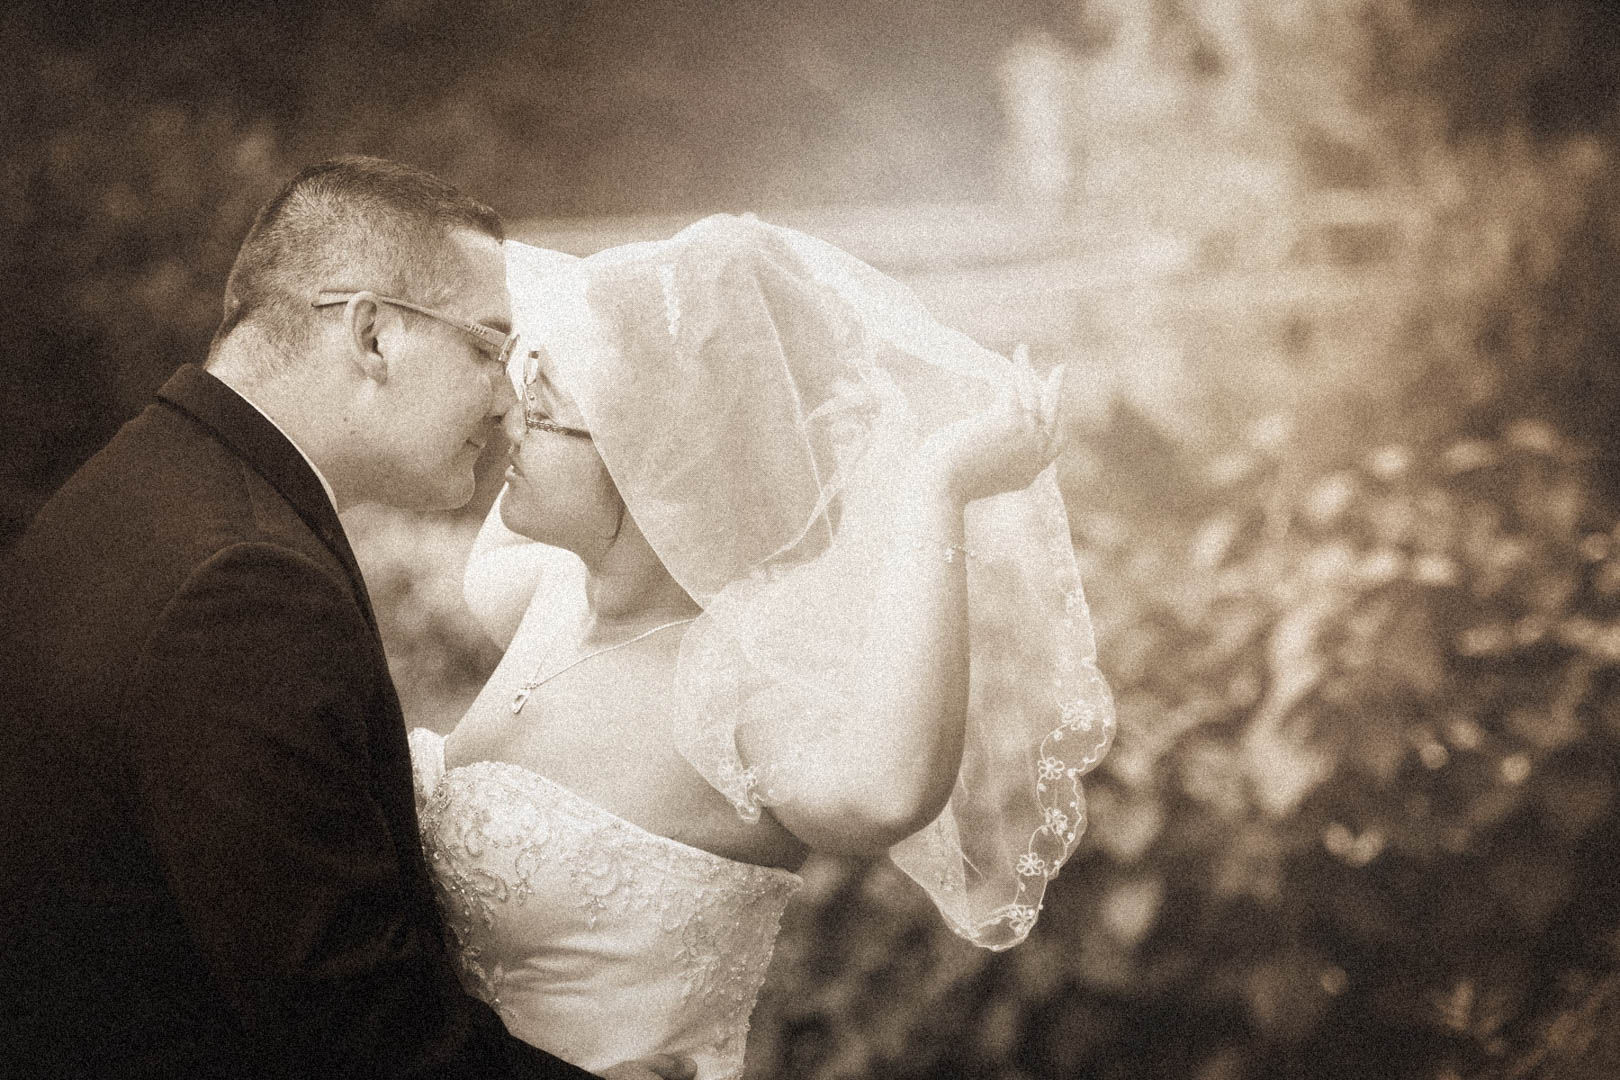 Bride kissing her groom while holding her veil